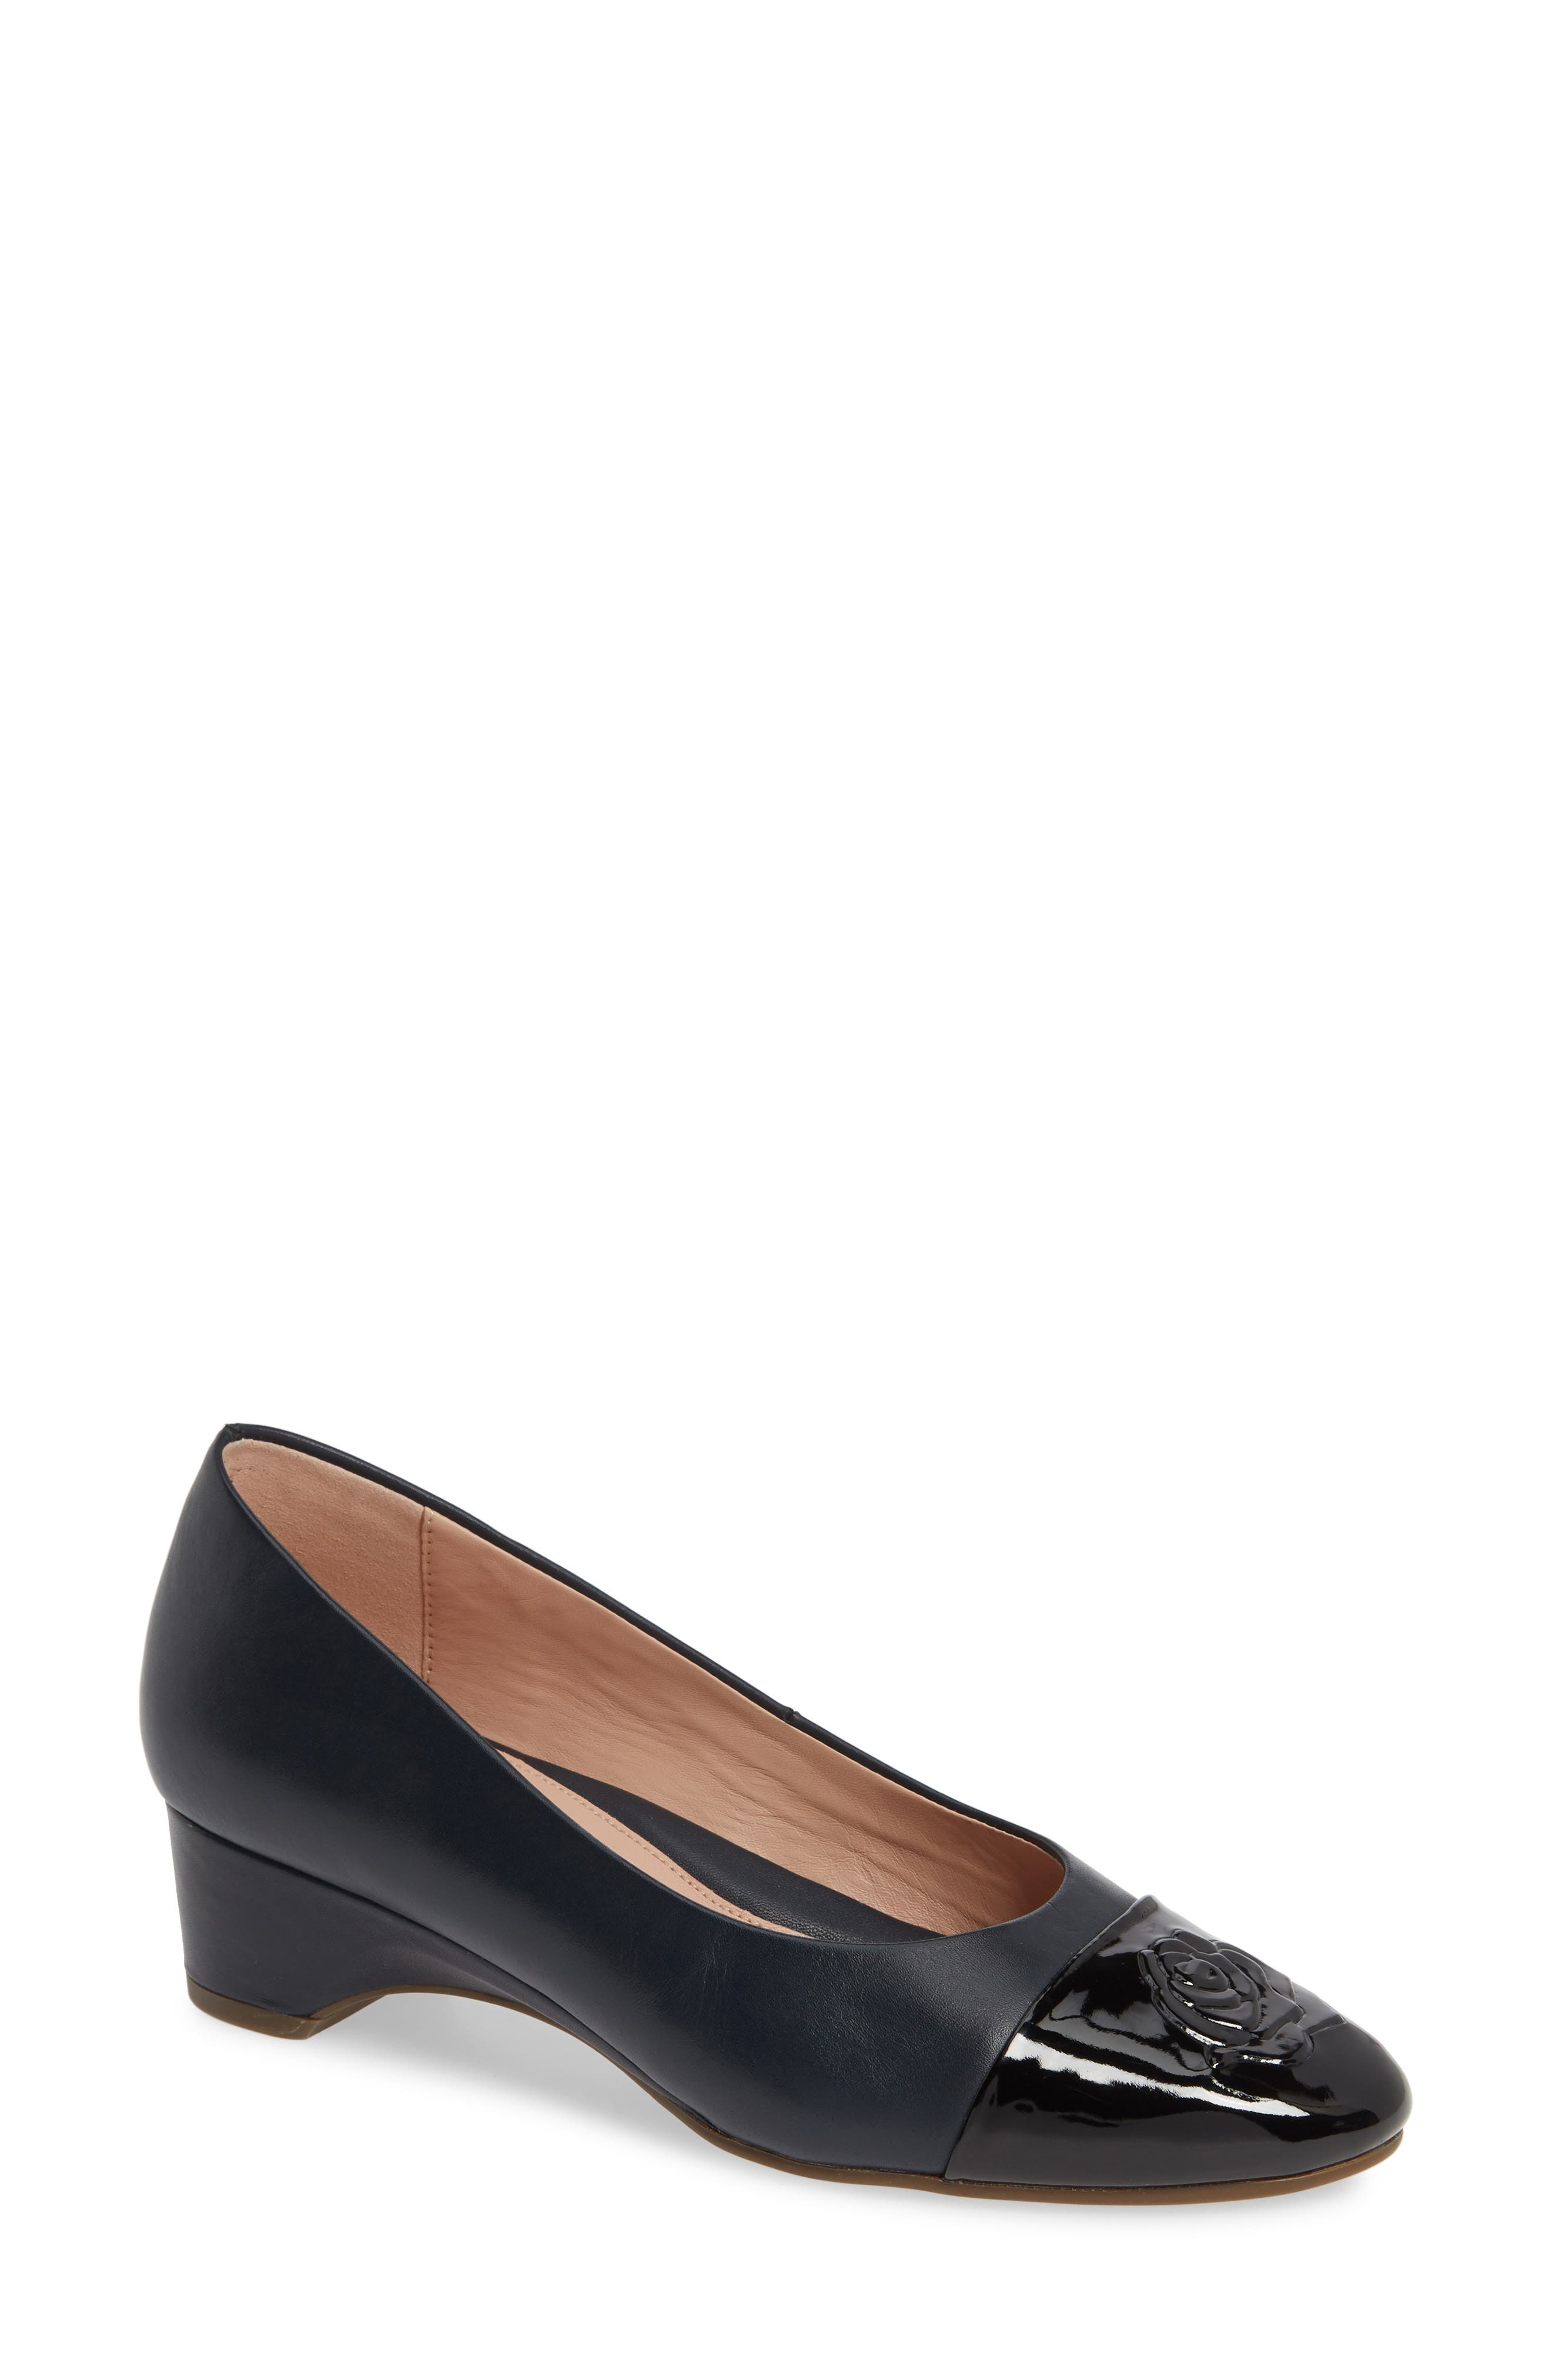 TARYN ROSE, Babe Cap Toe Pump, Main thumbnail 1, color, MIDNIGHT/ BLACK LEATHER